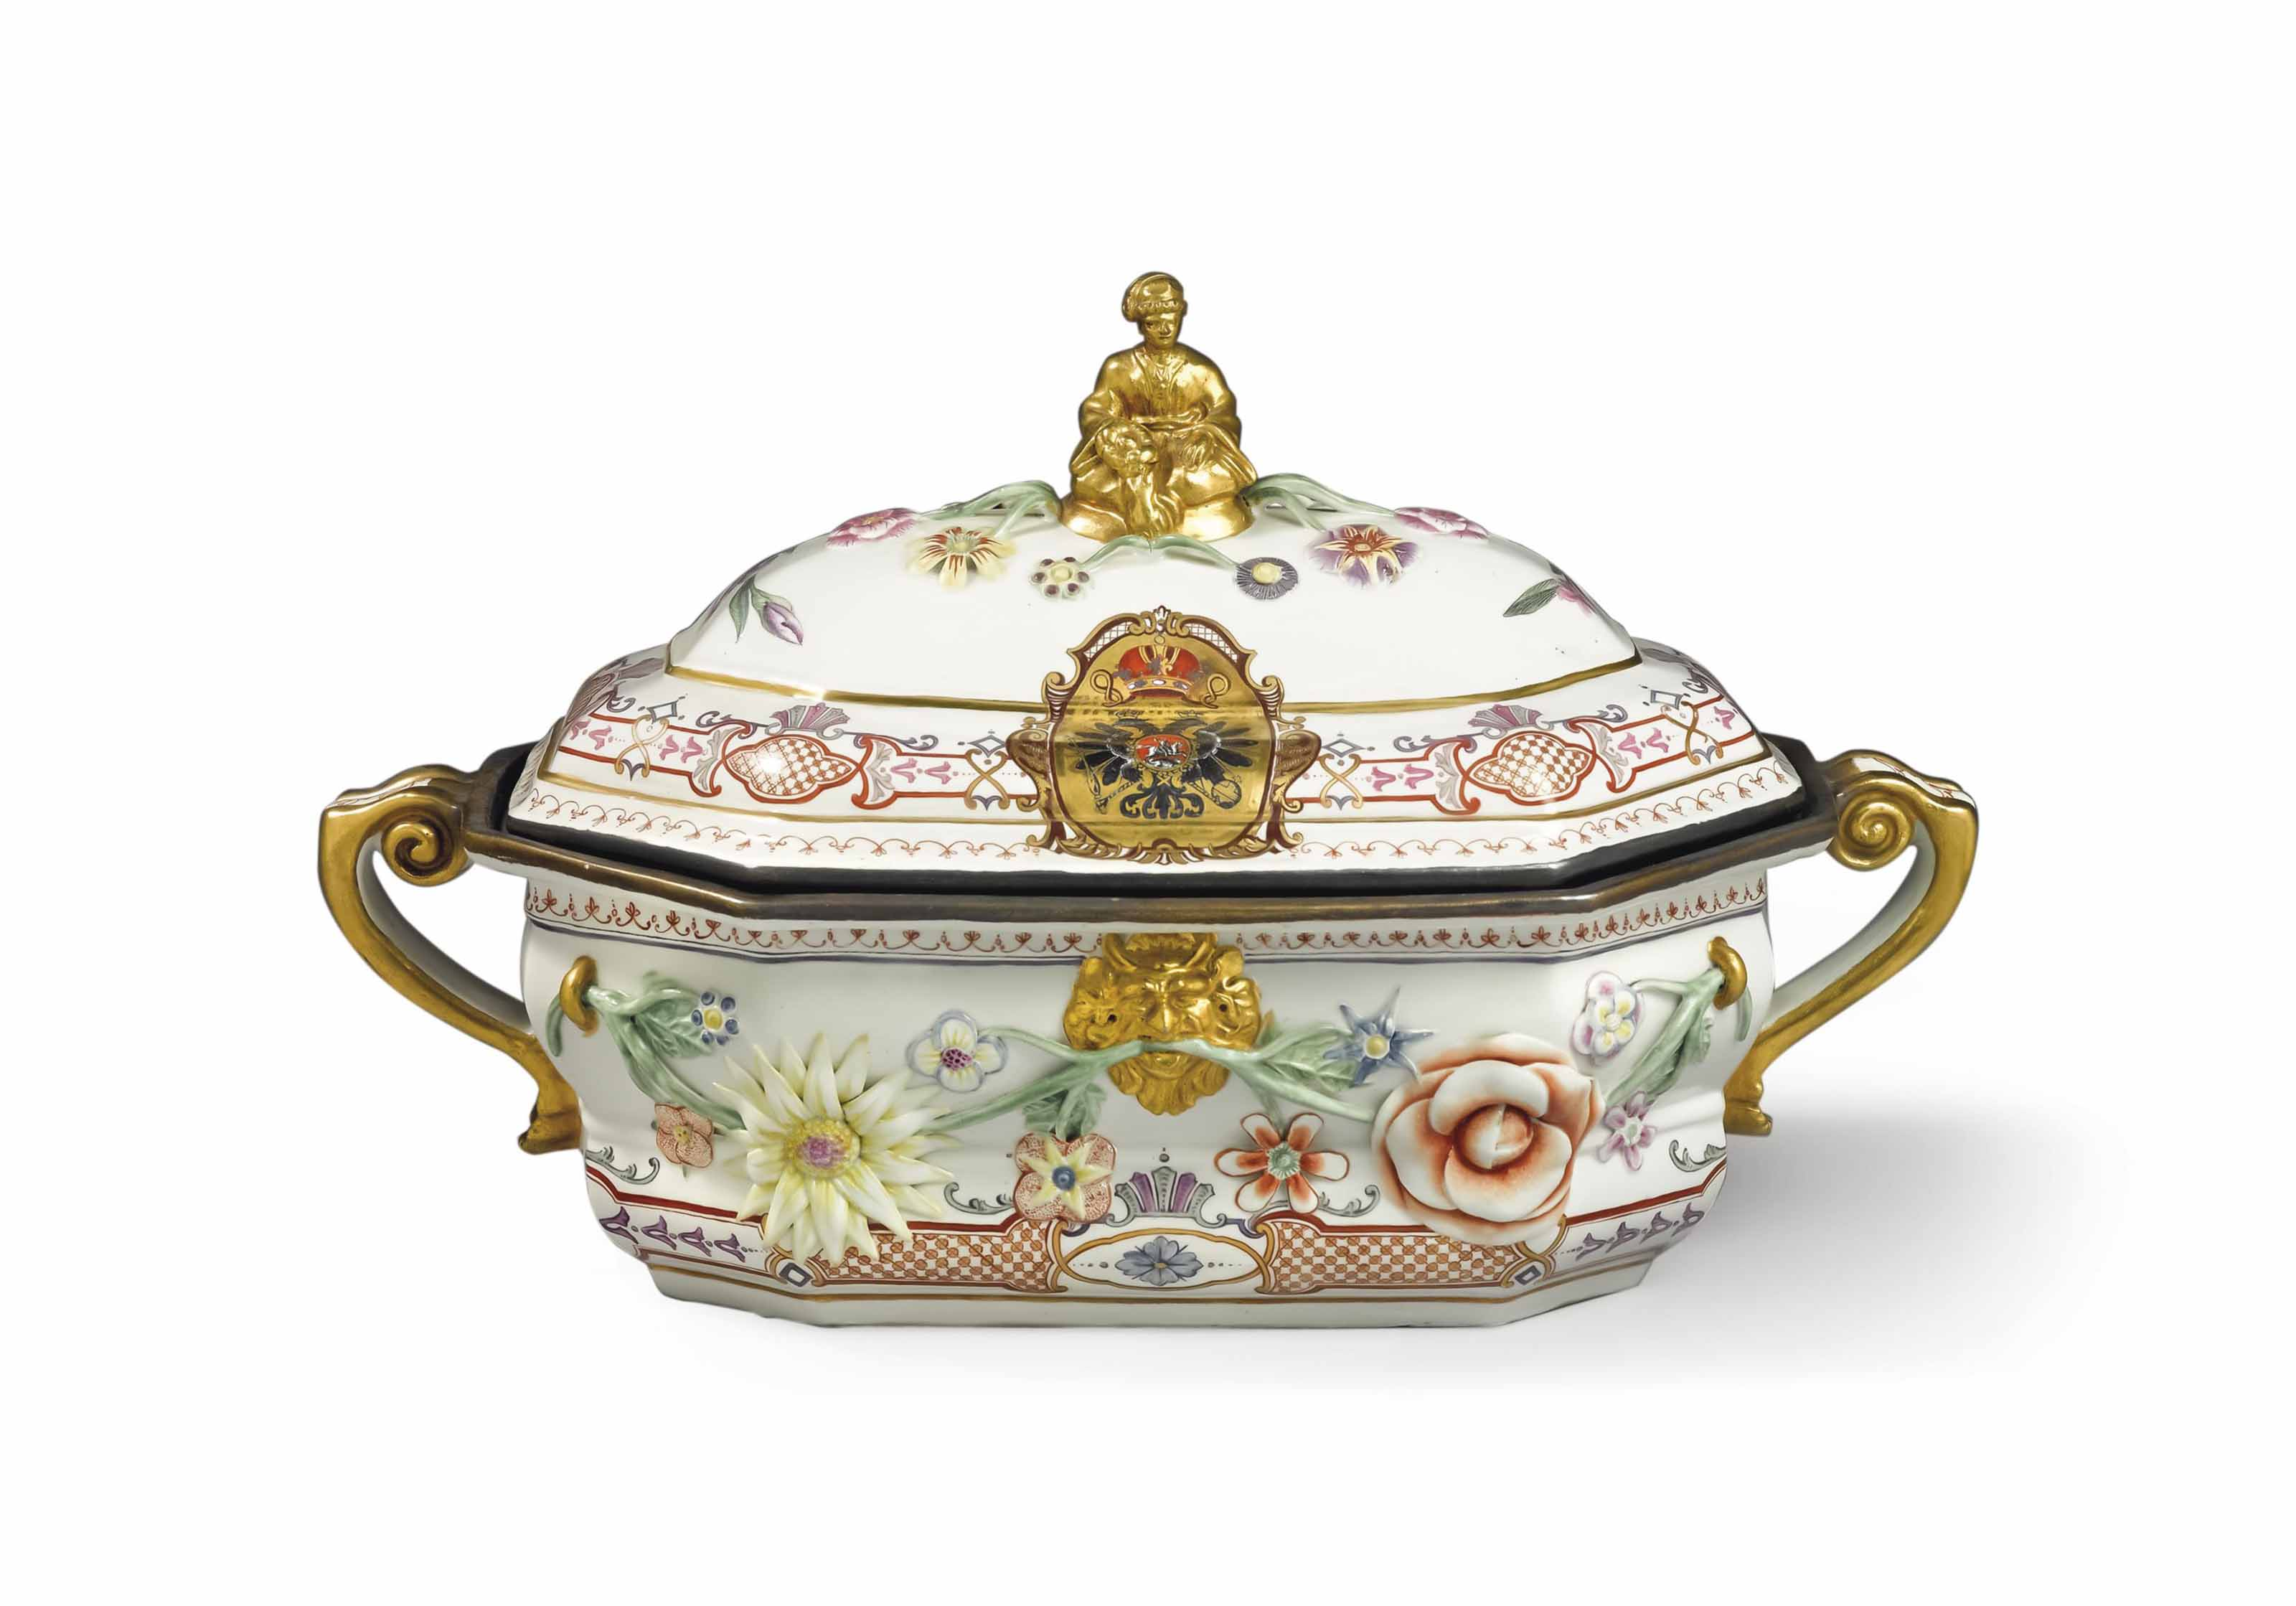 A VIENNA (DU PAQUIER) PORCELAIN ARMORIAL TUREEN AND COVER